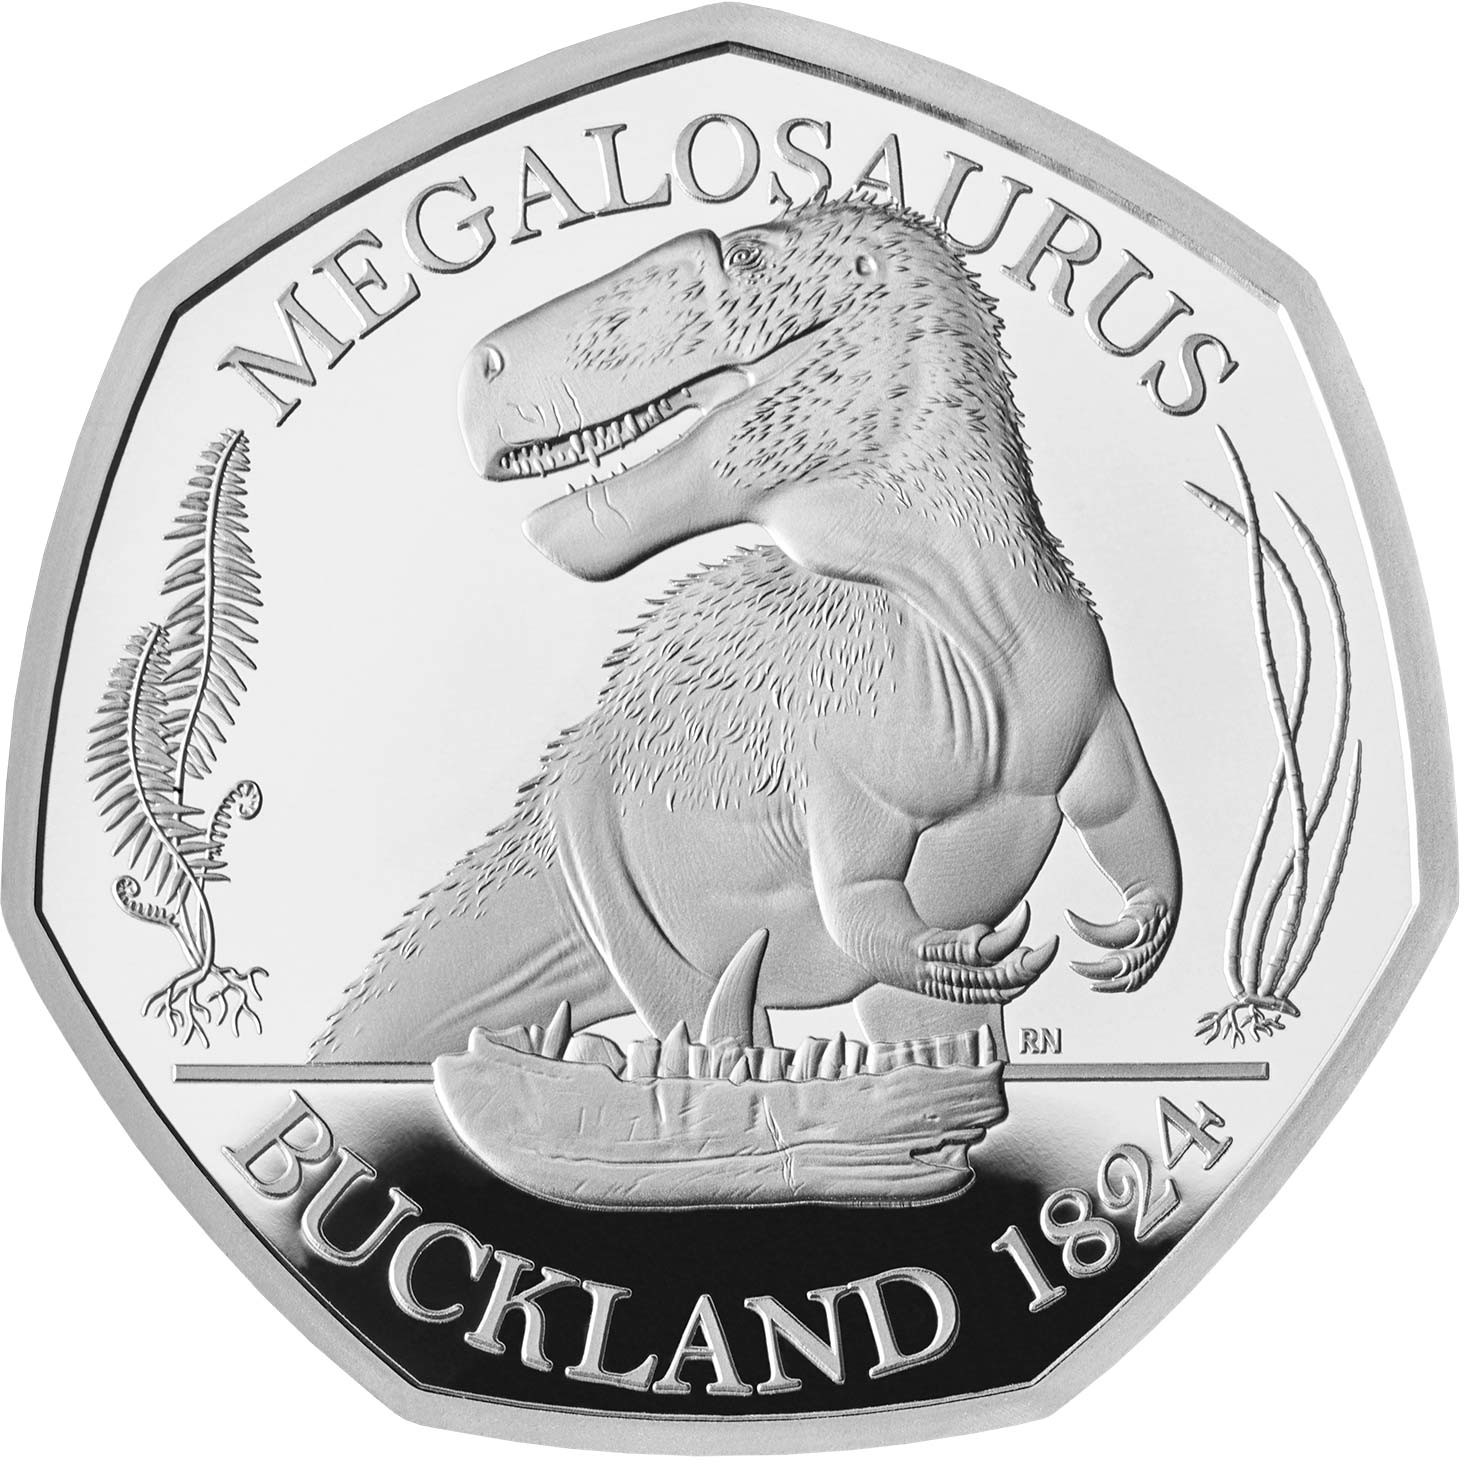 Fifty Pence 2020 Megalosaurus: Photo Silver Proof Megalosaurus 2020 UK 50p coin